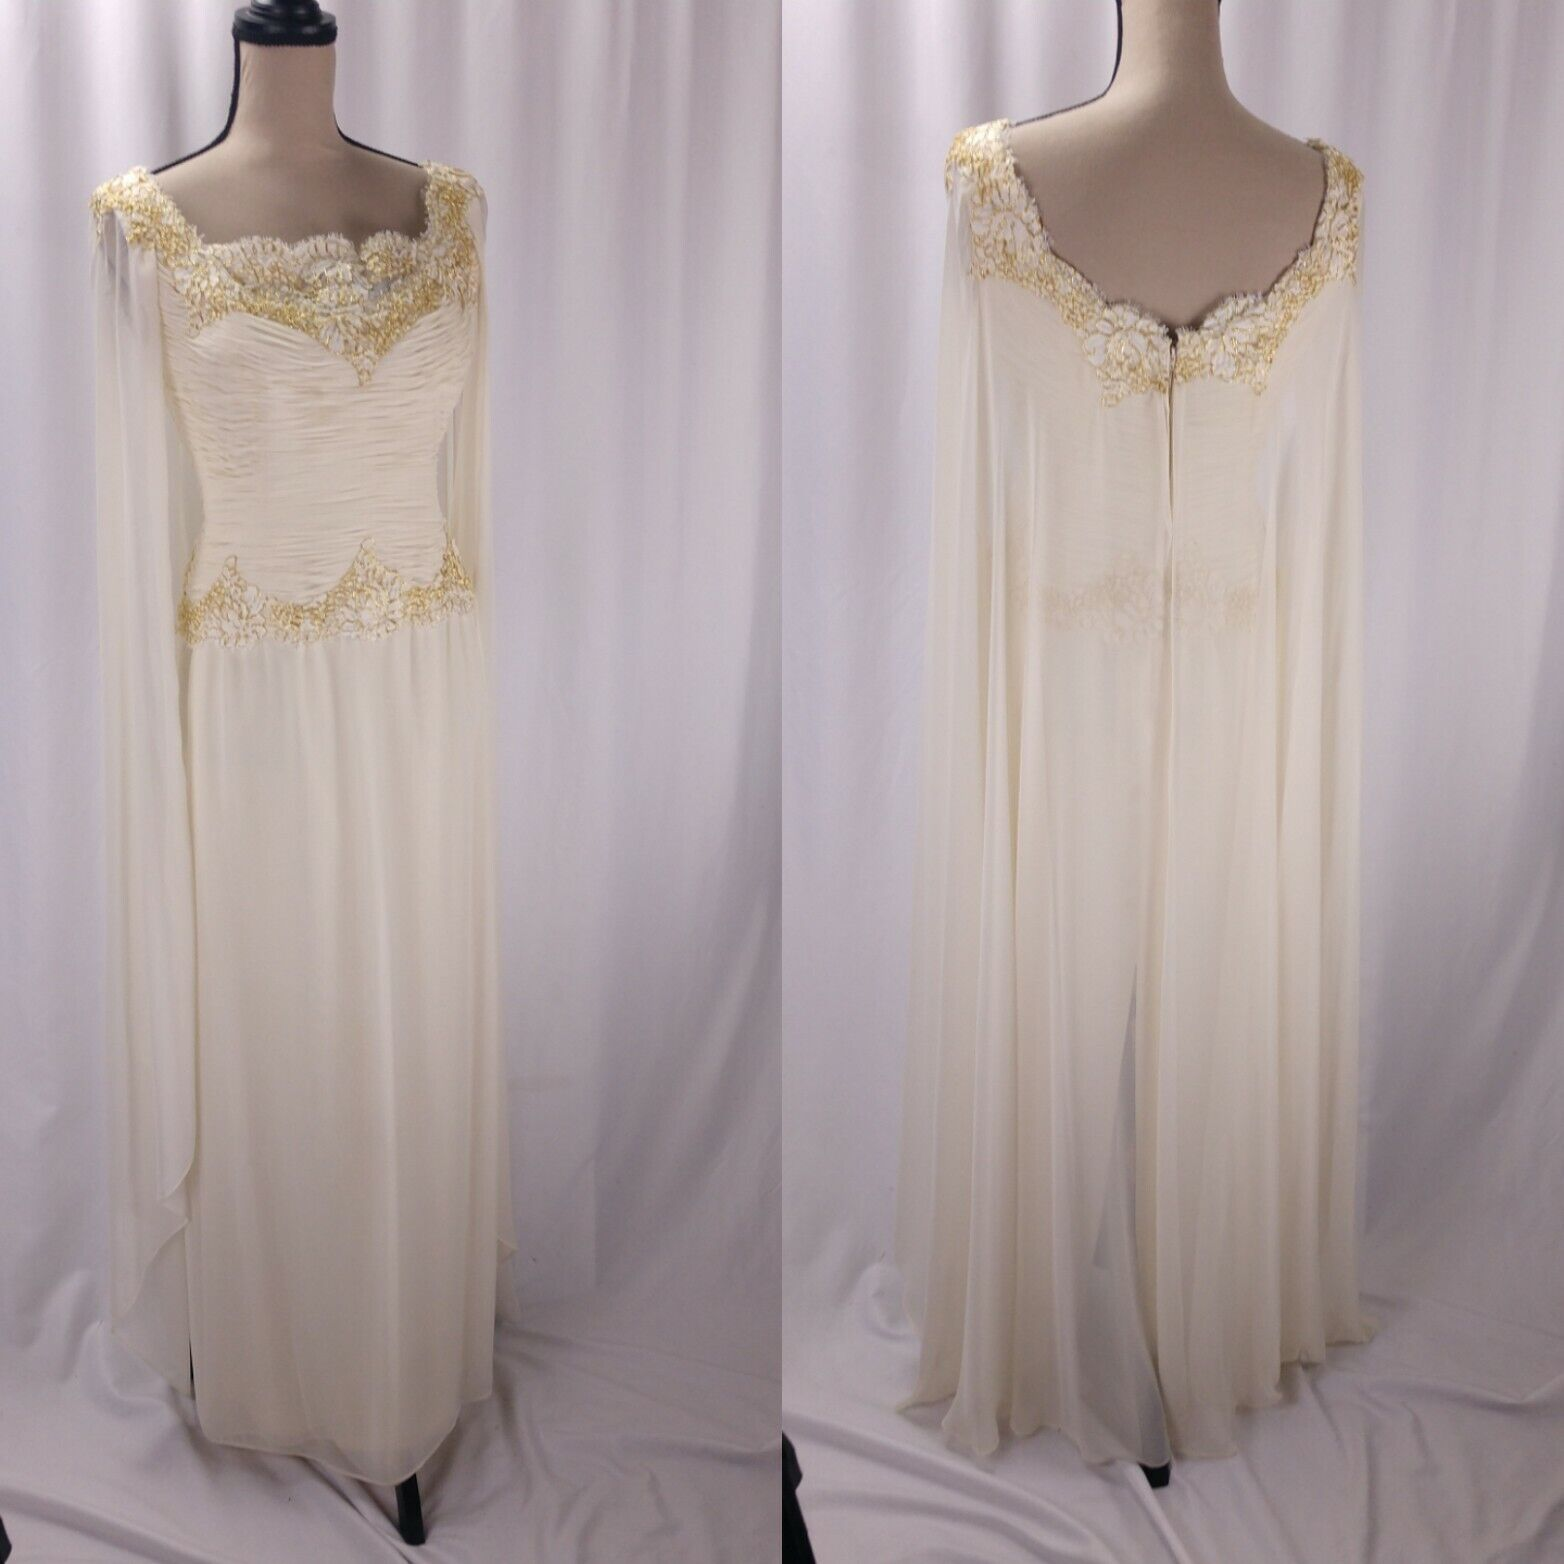 Vintage Chris Kole Cape Sheath Dress Size S Ivory gold Lace Trim Grecian Bridal